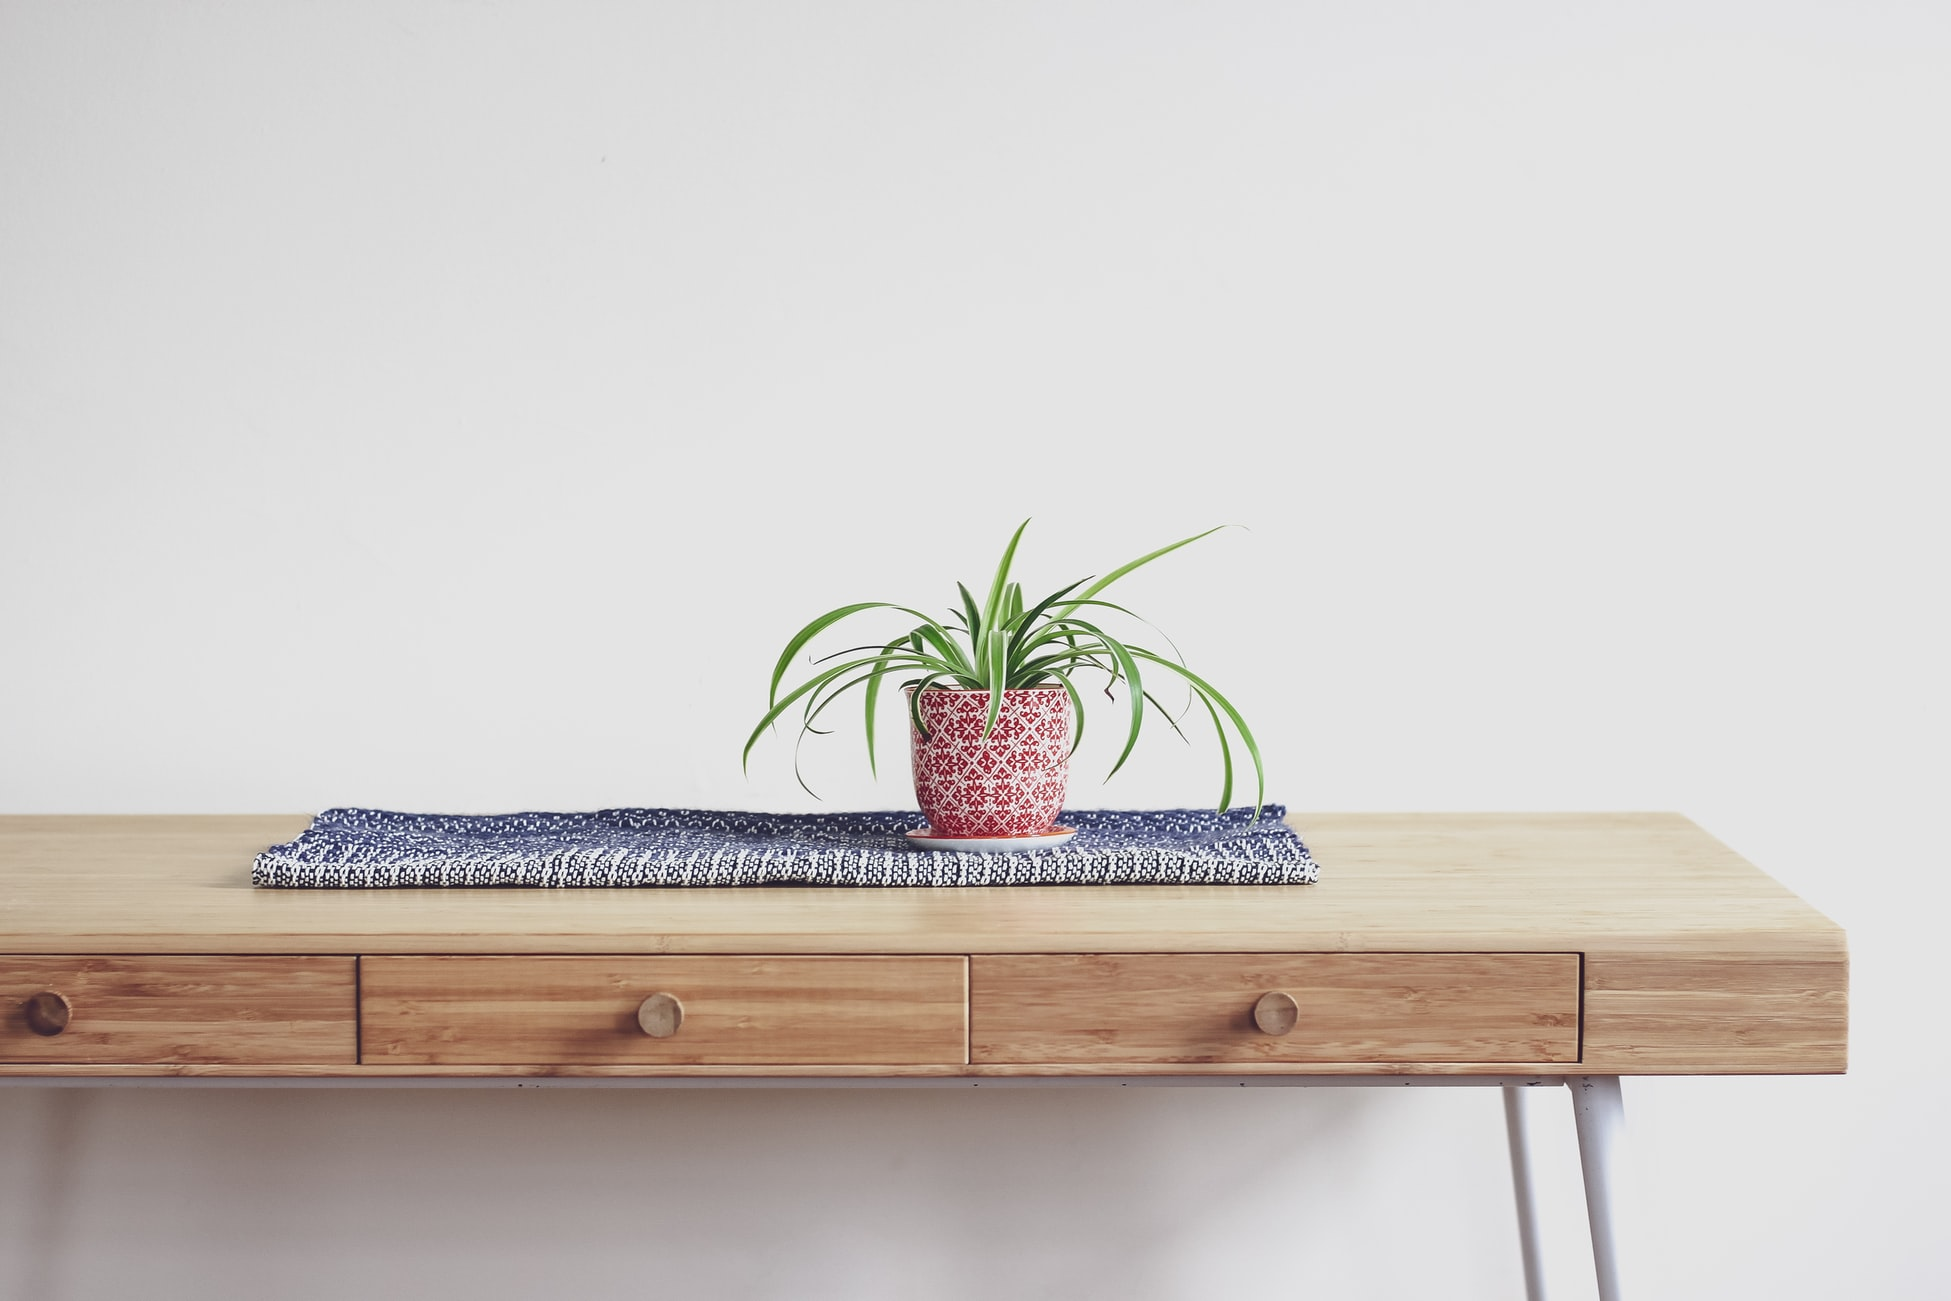 Stock photo of a spider plant